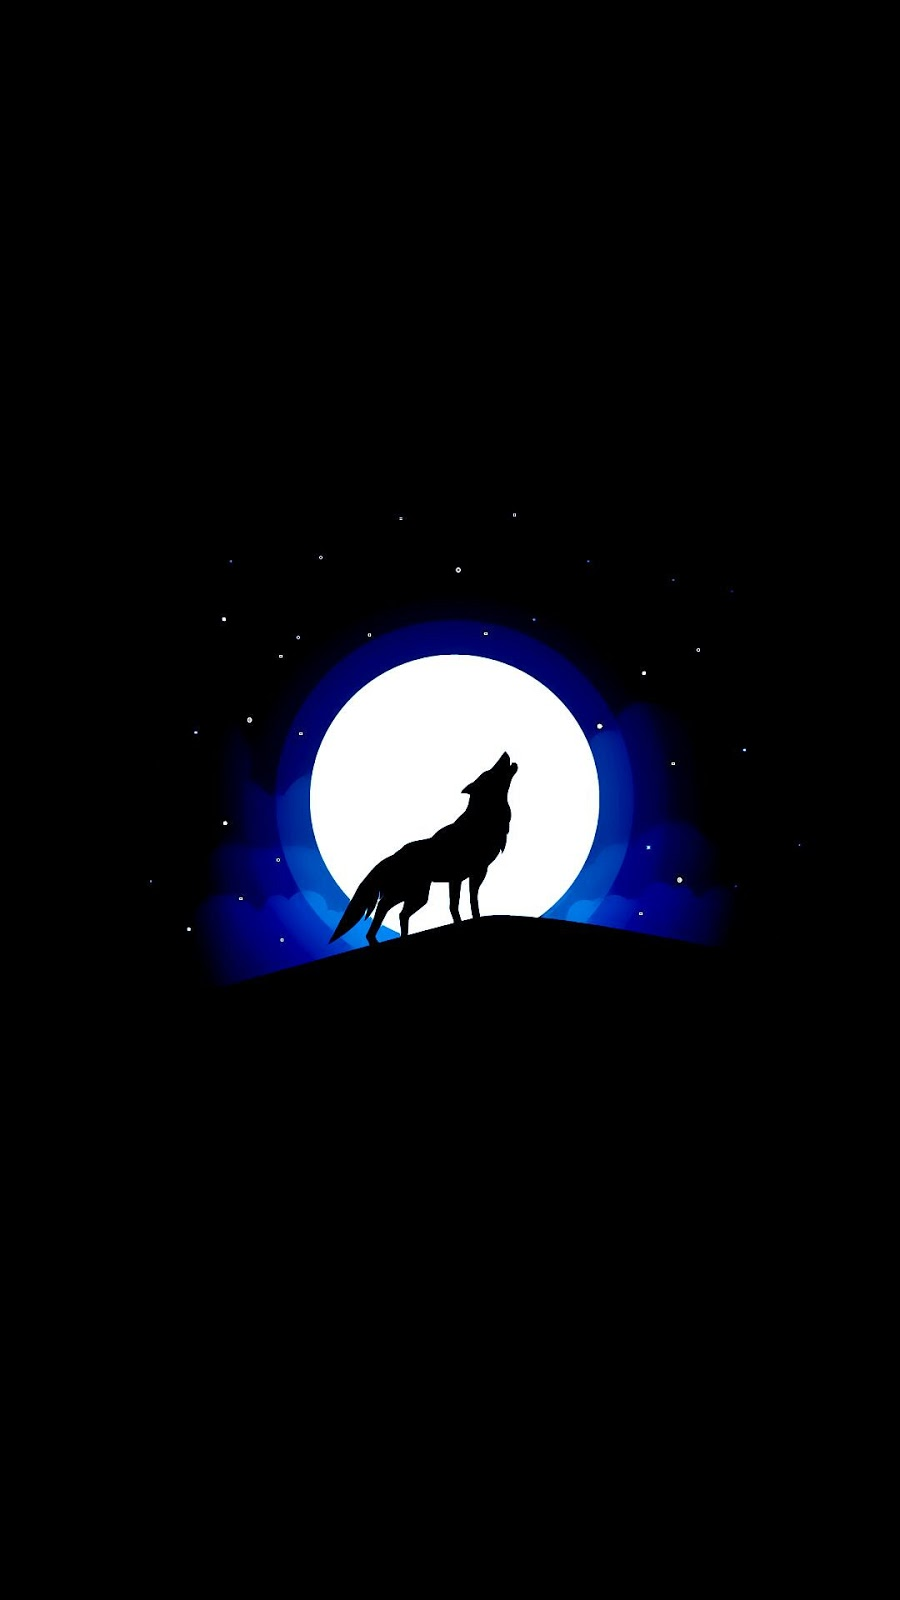 Howling Wolf (Saving battery for Amoled display)